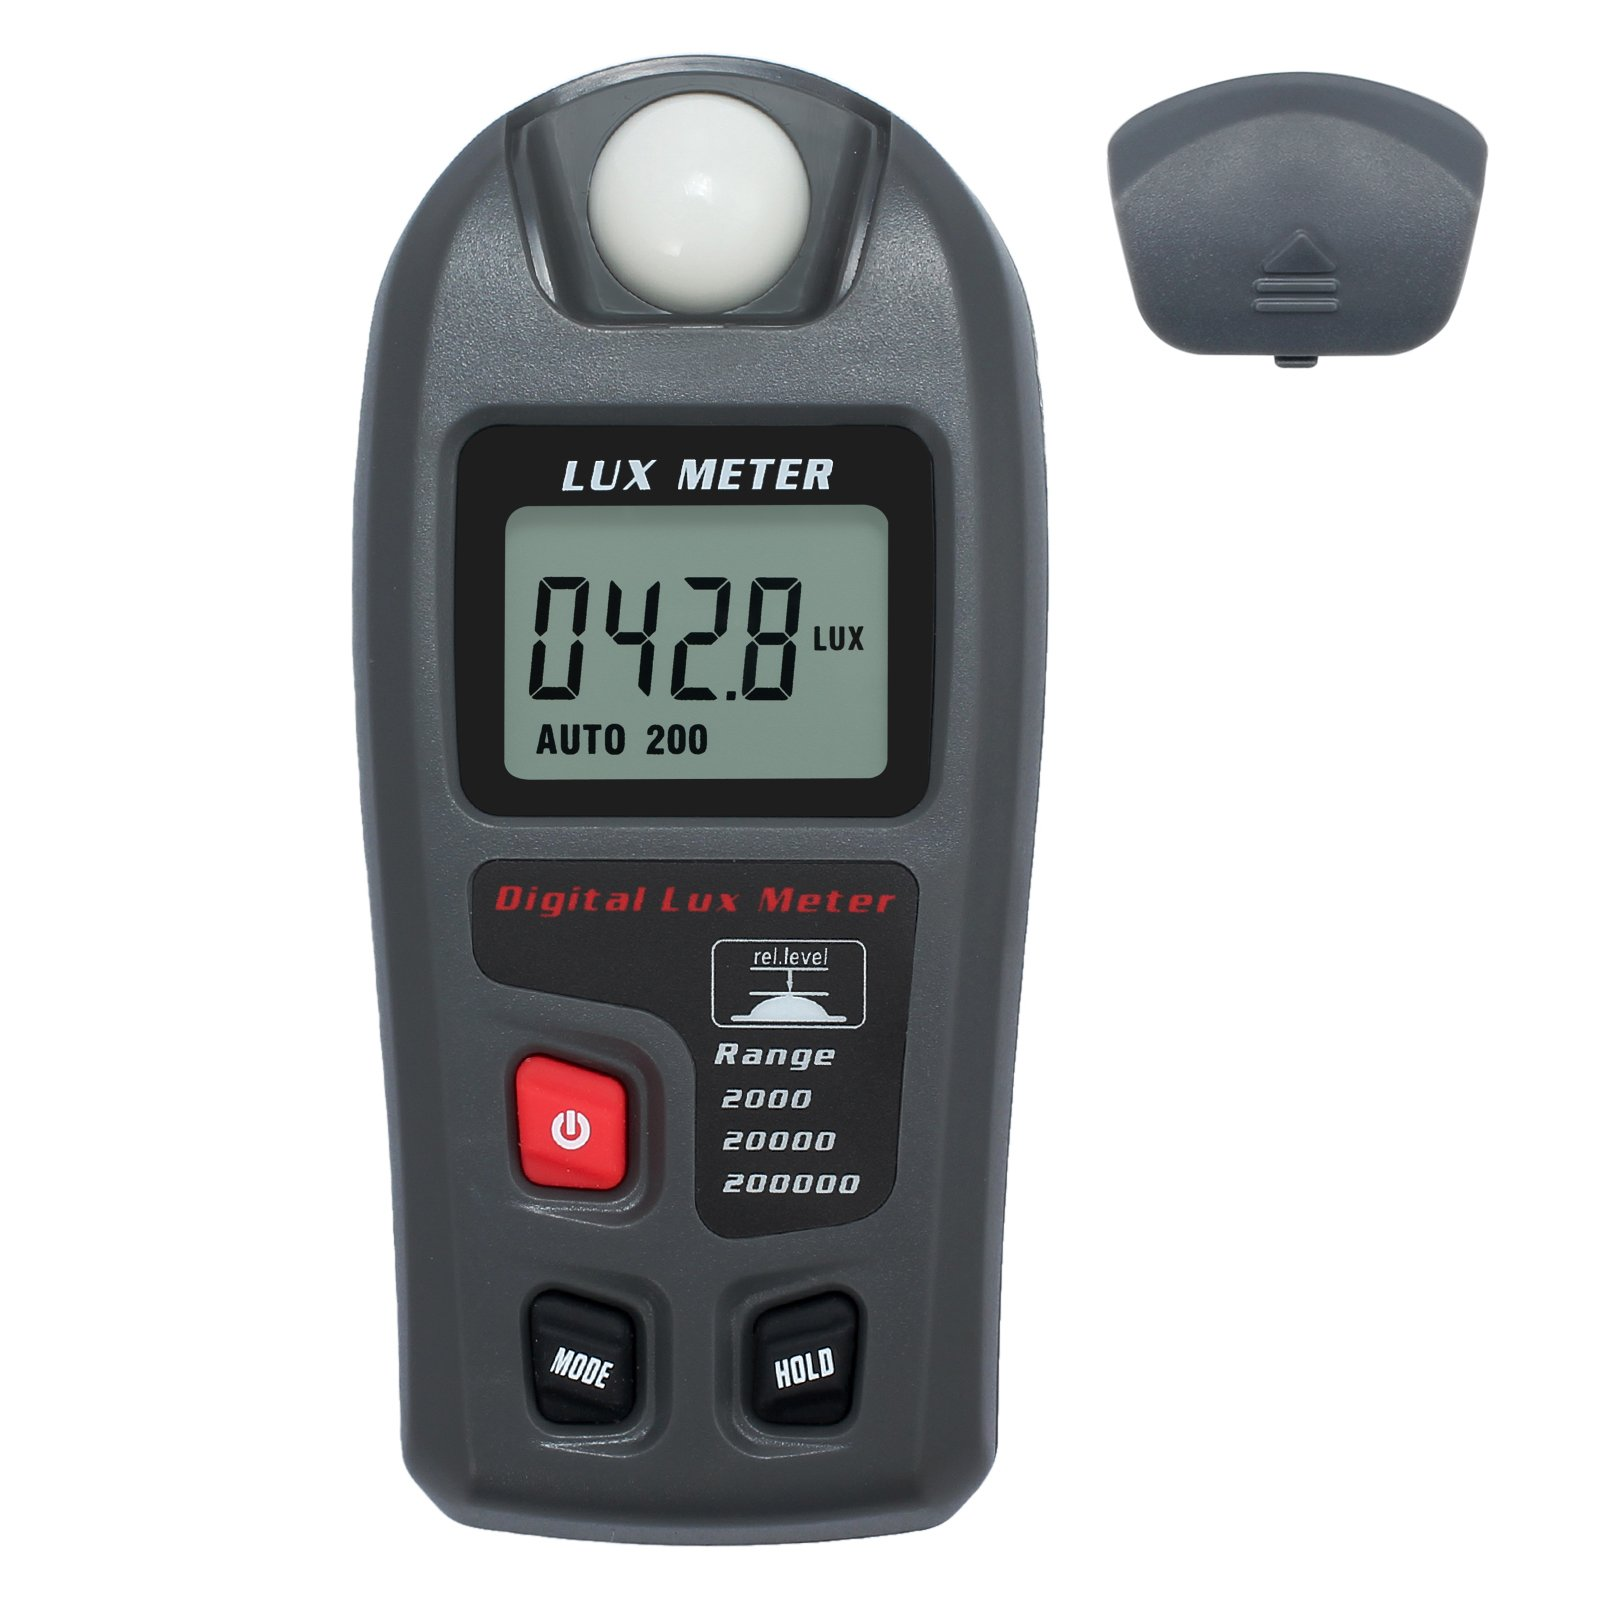 Proster Digital Luxmeter Digital Illuminance Light Meter High Accuracy ±4% Lux Meter with LCD Display Range 0.1-200000 Lux/0.01-20000 Fc